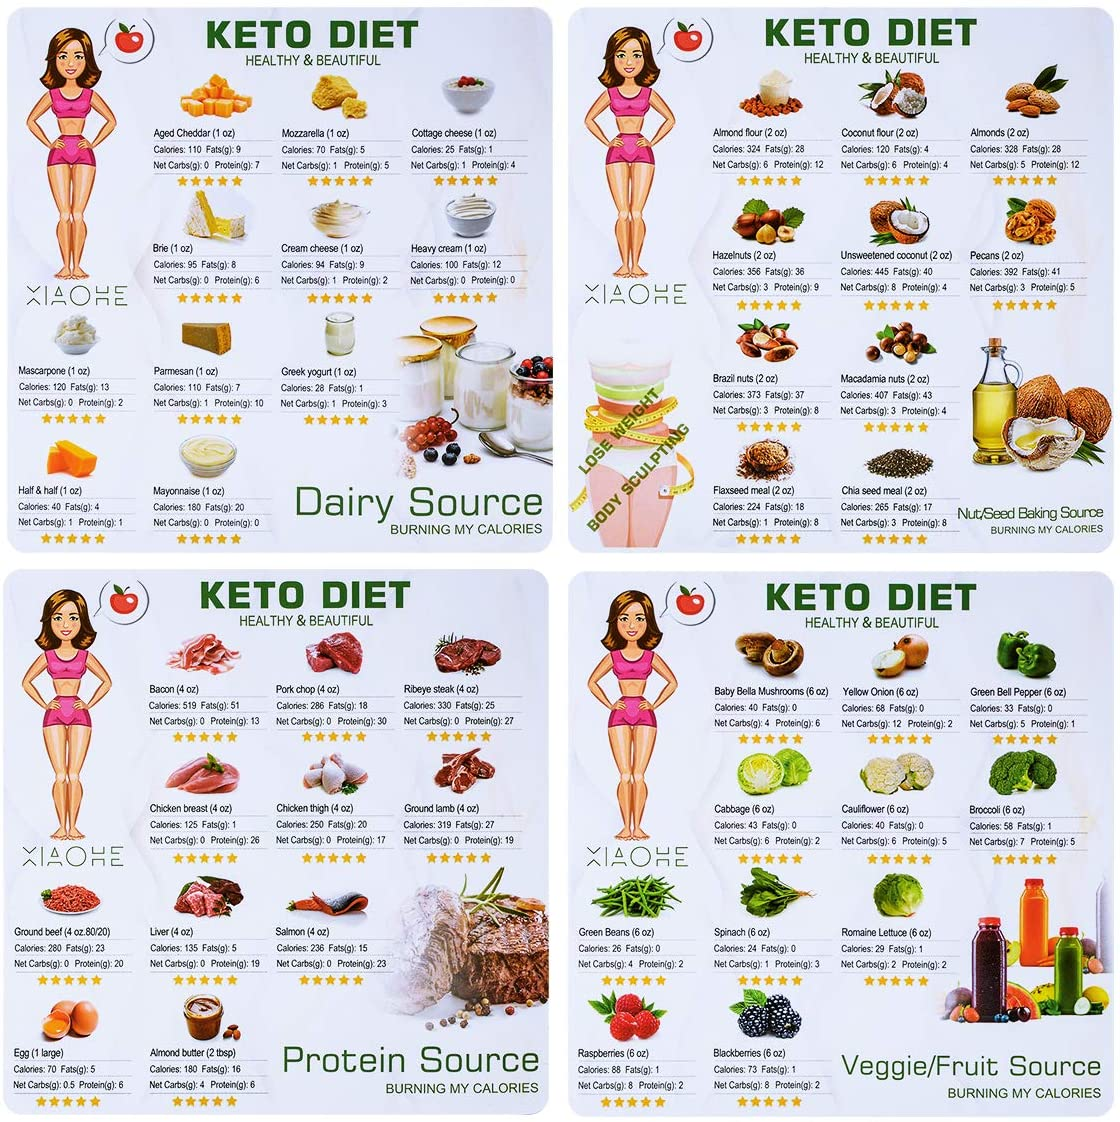 keto diet what if i cheat